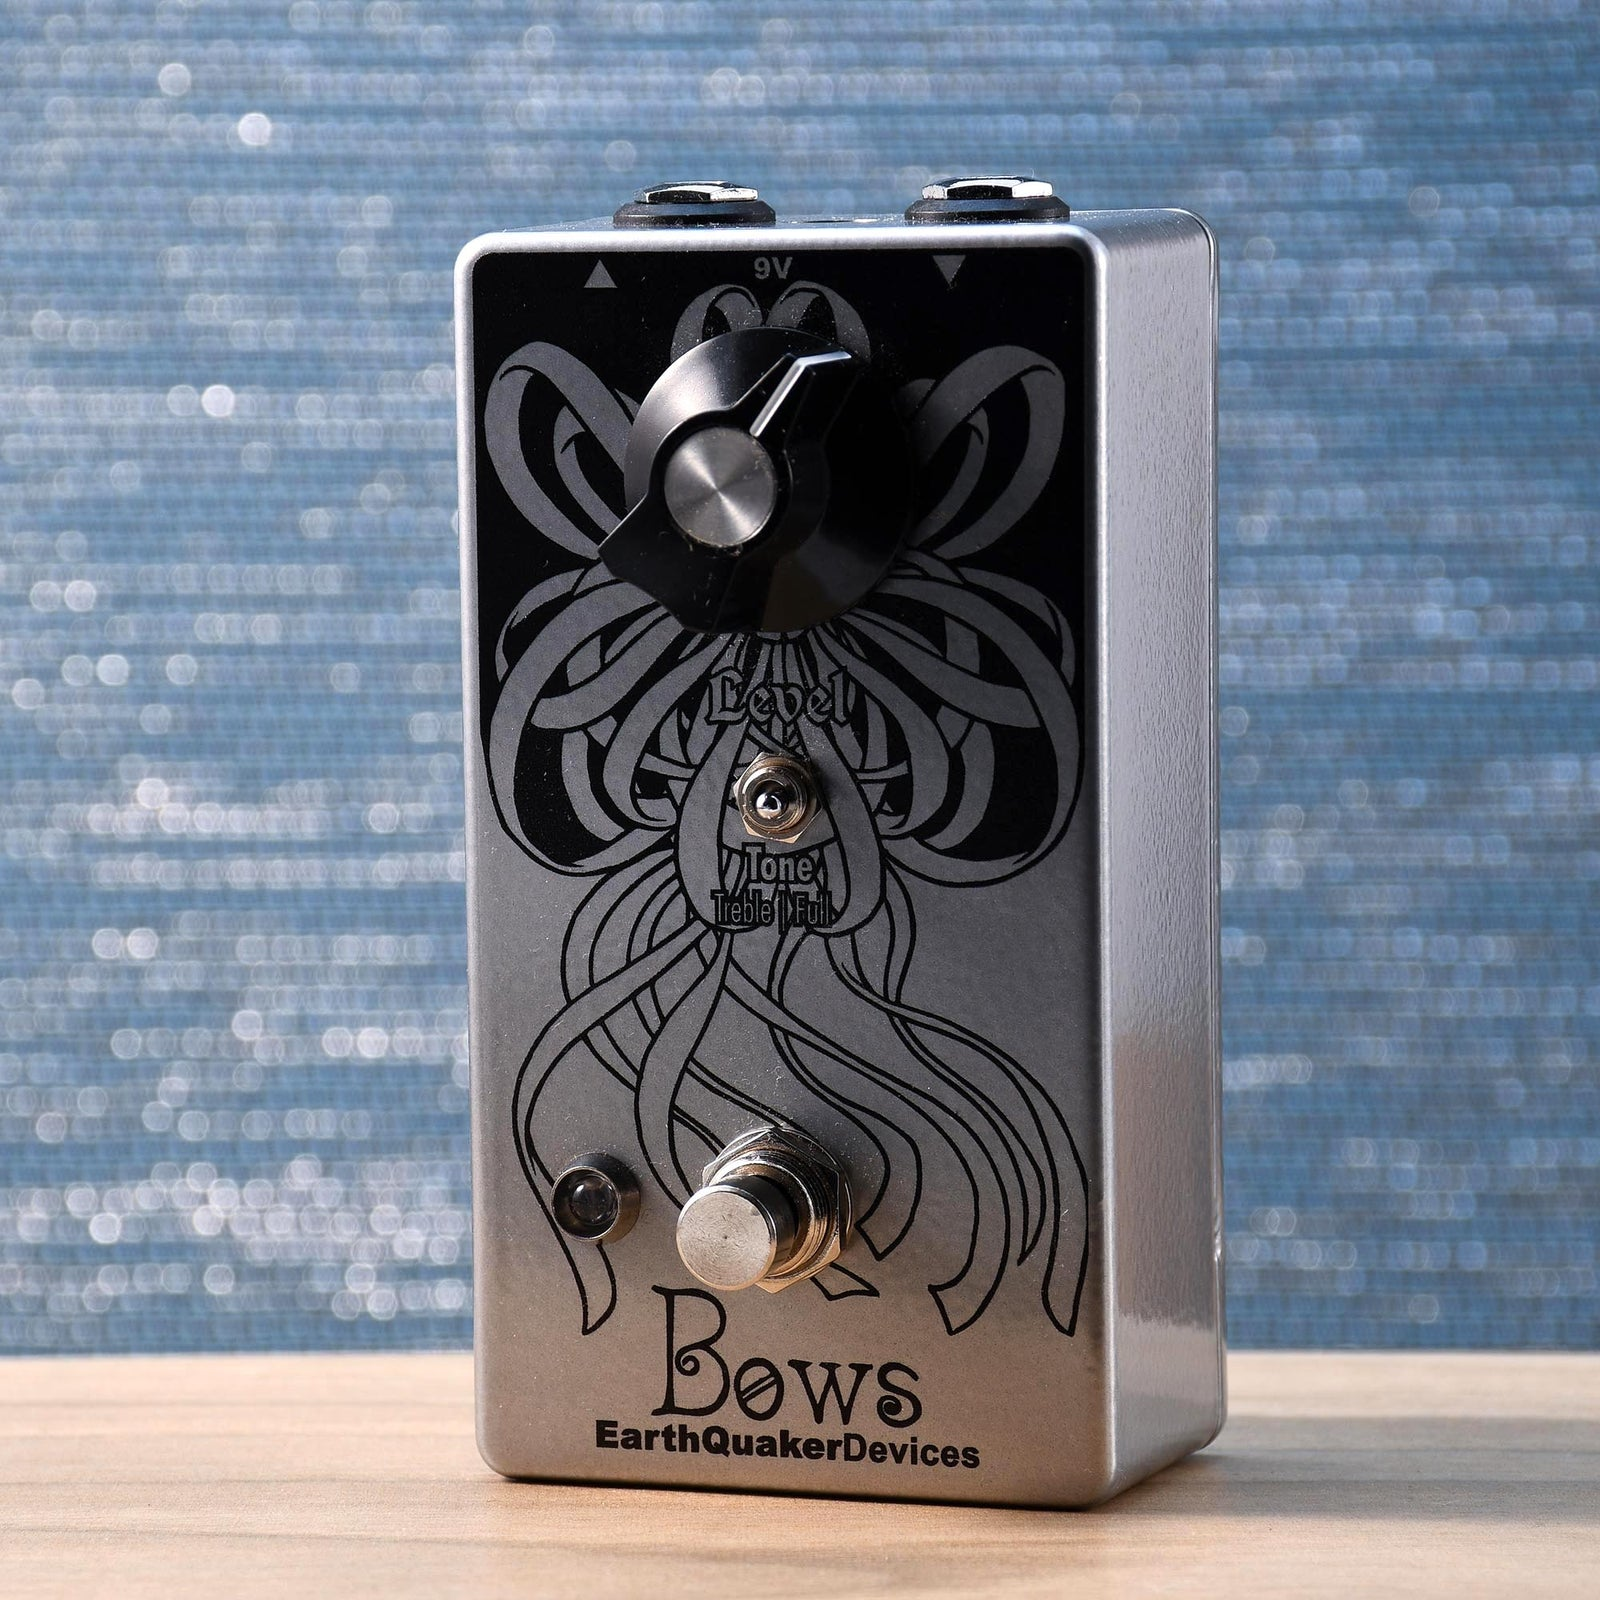 Earthquaker Bows Germanium Preamp Booster